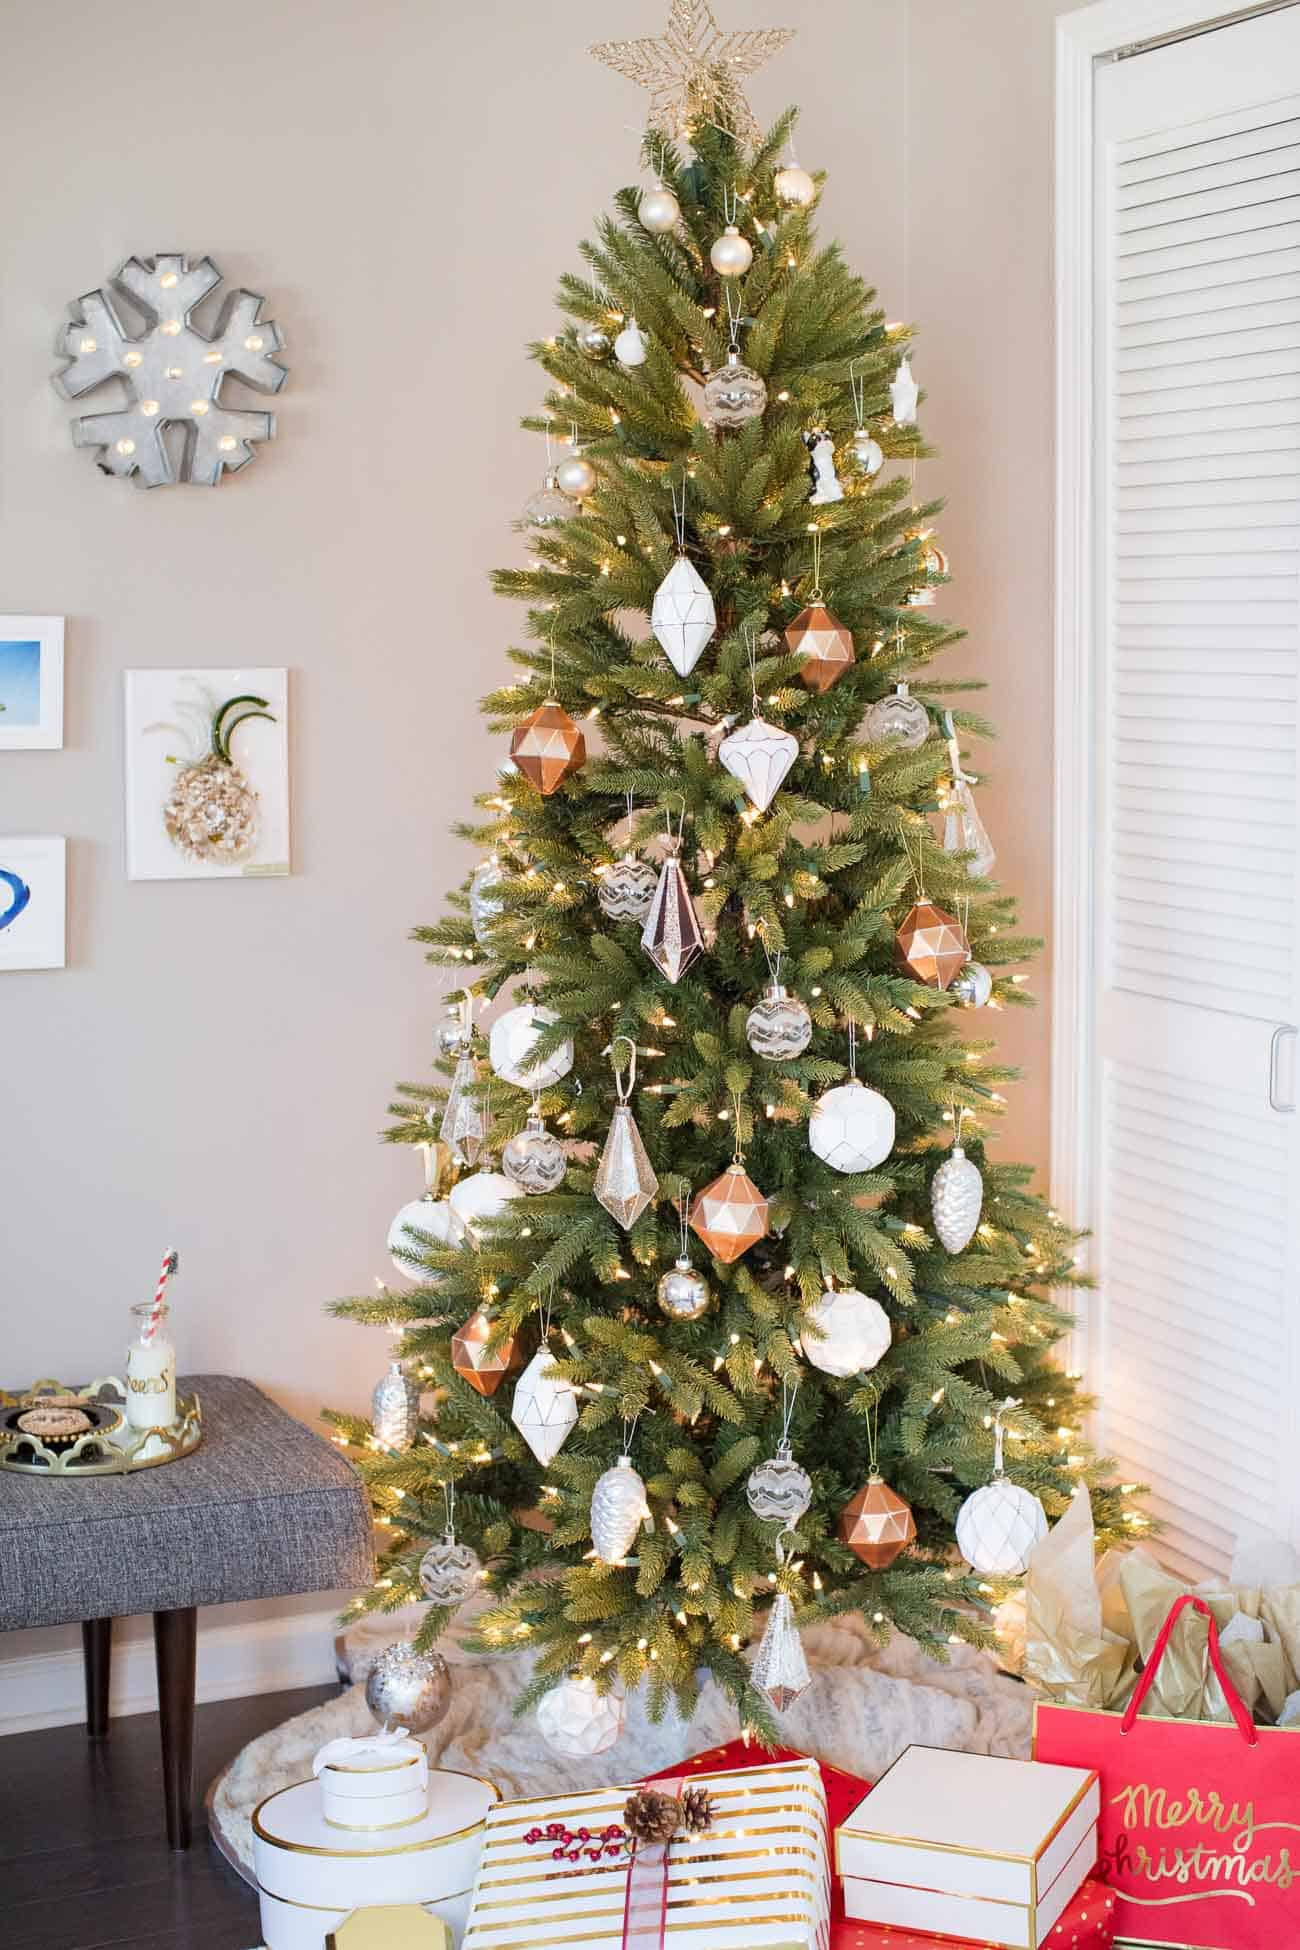 a winter wonderland holiday decorating ideas christmas decorating ideas christmas tree white and gold christmas tree - Winter Wonderland Christmas Decorating Ideas